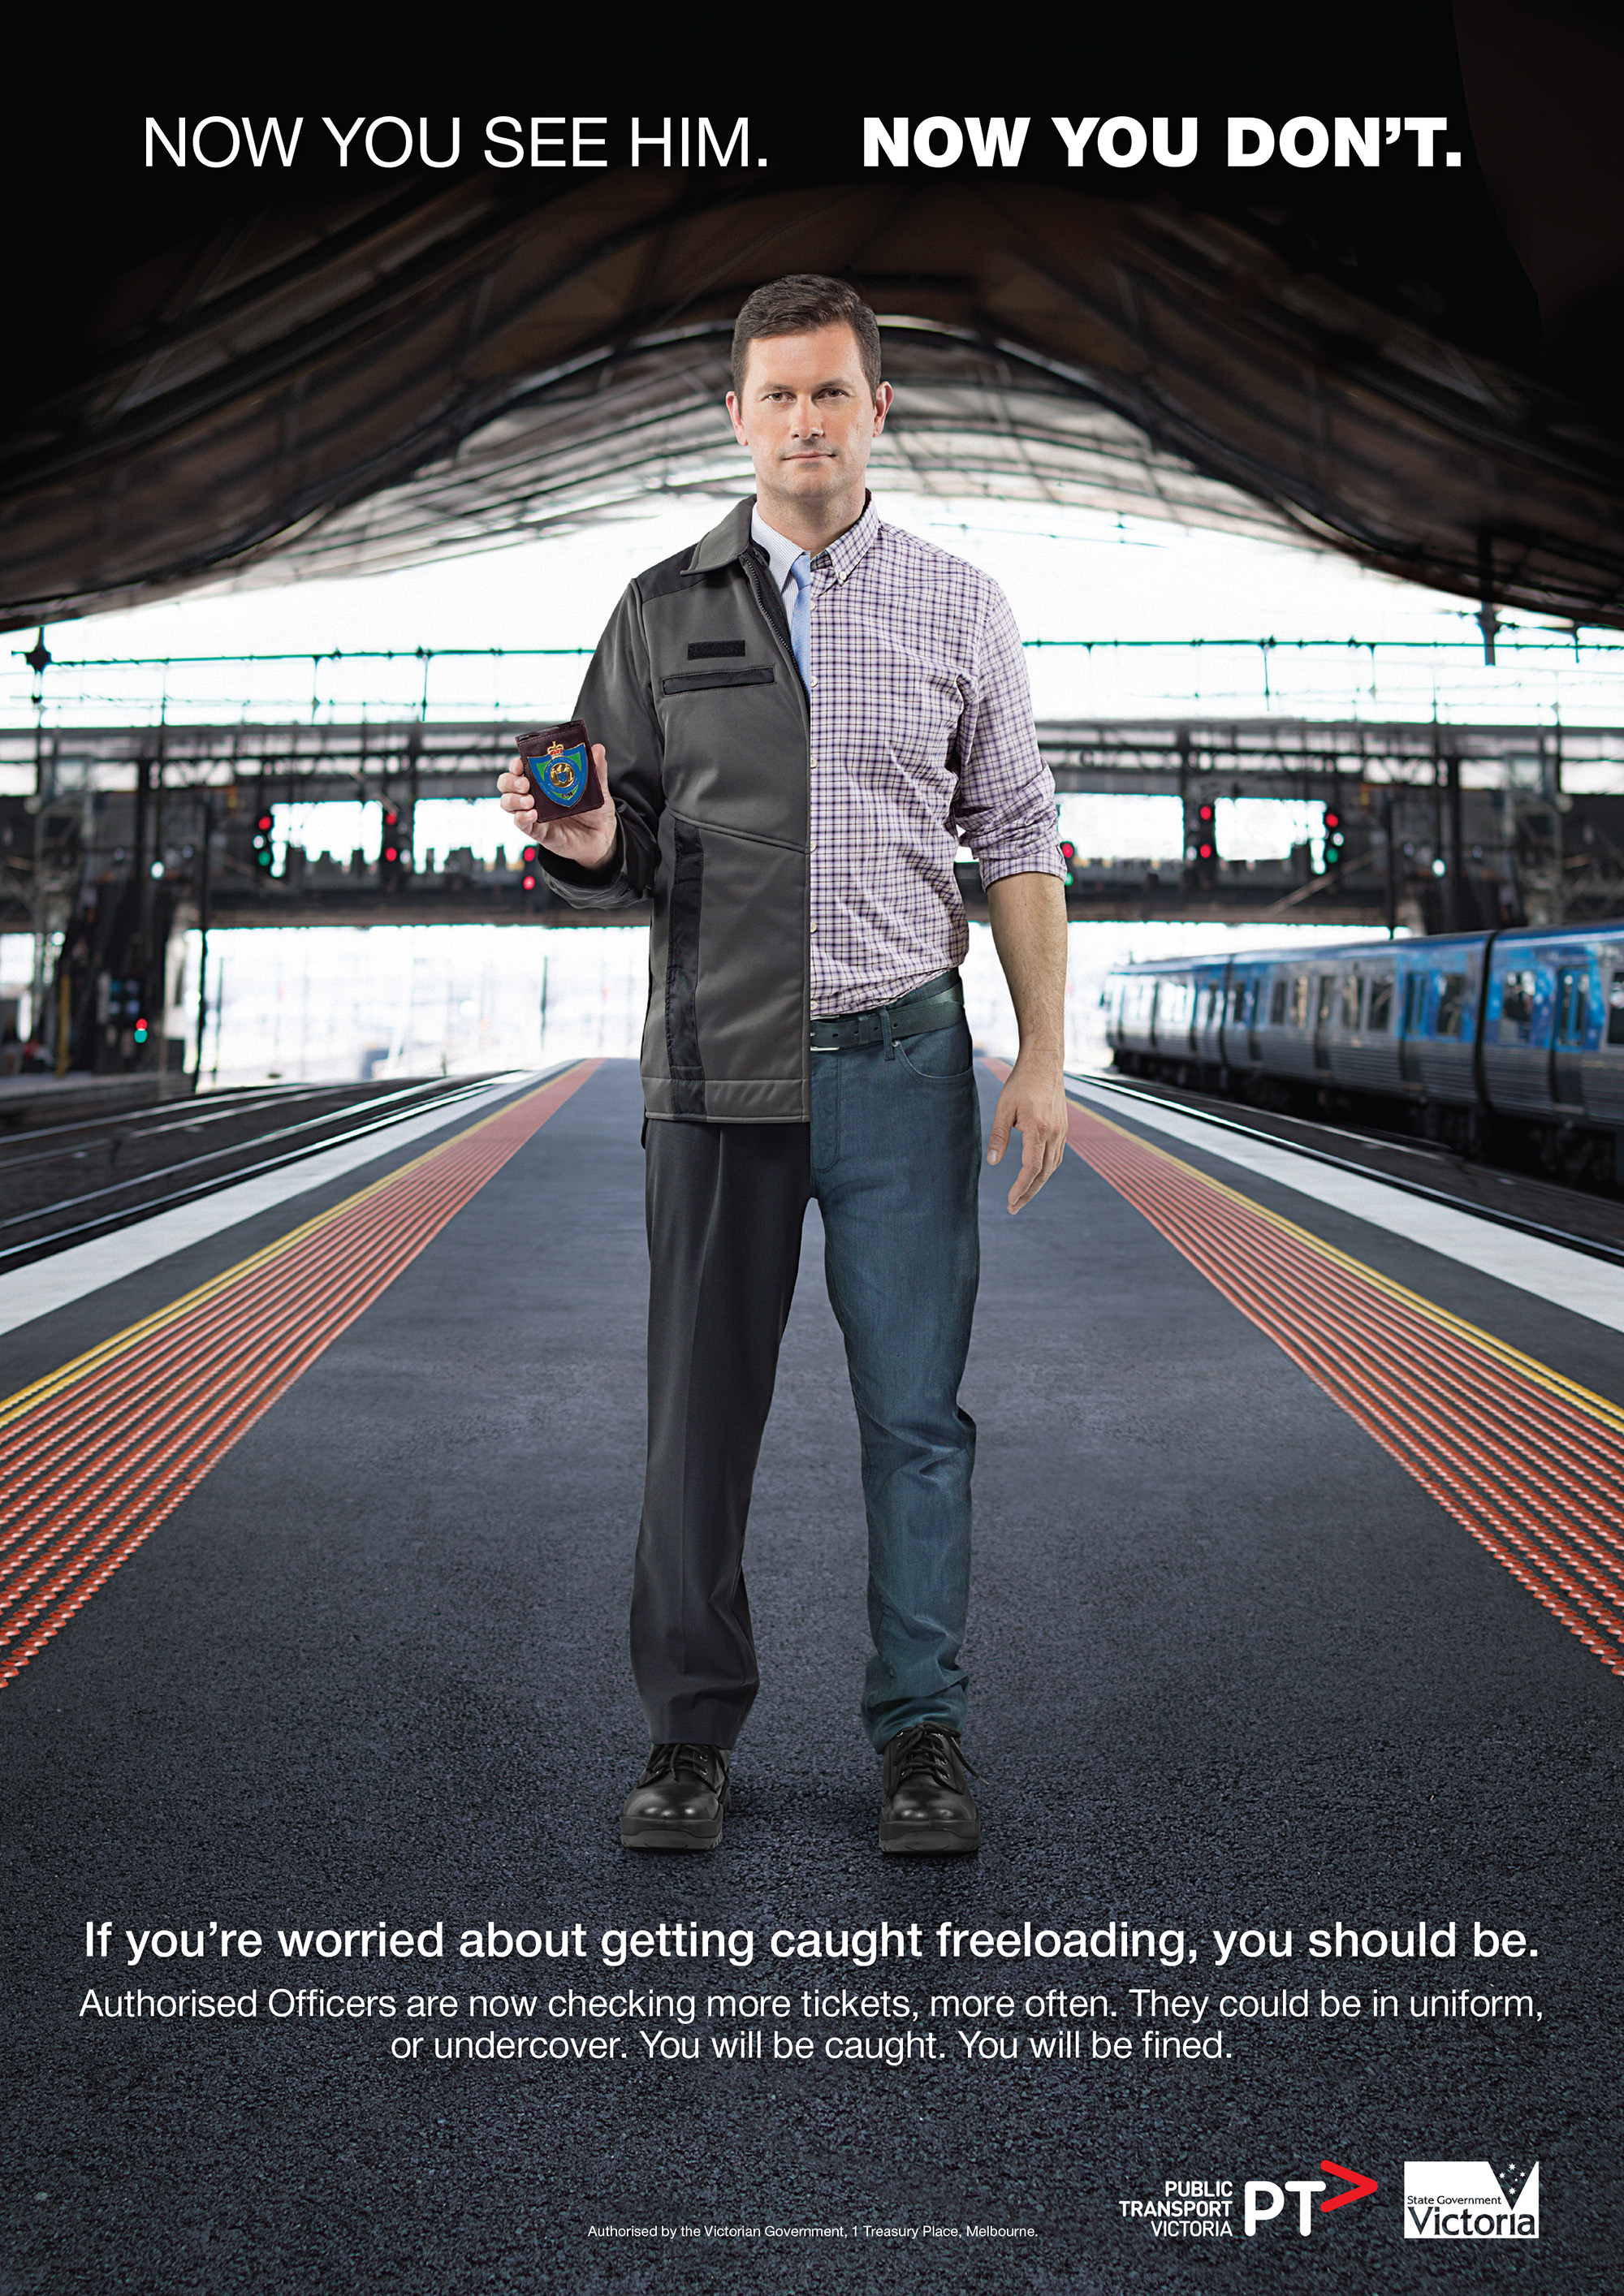 campaign-thom-rigney-professional-photographer-advertising-commissioned-australia-melbourne-034